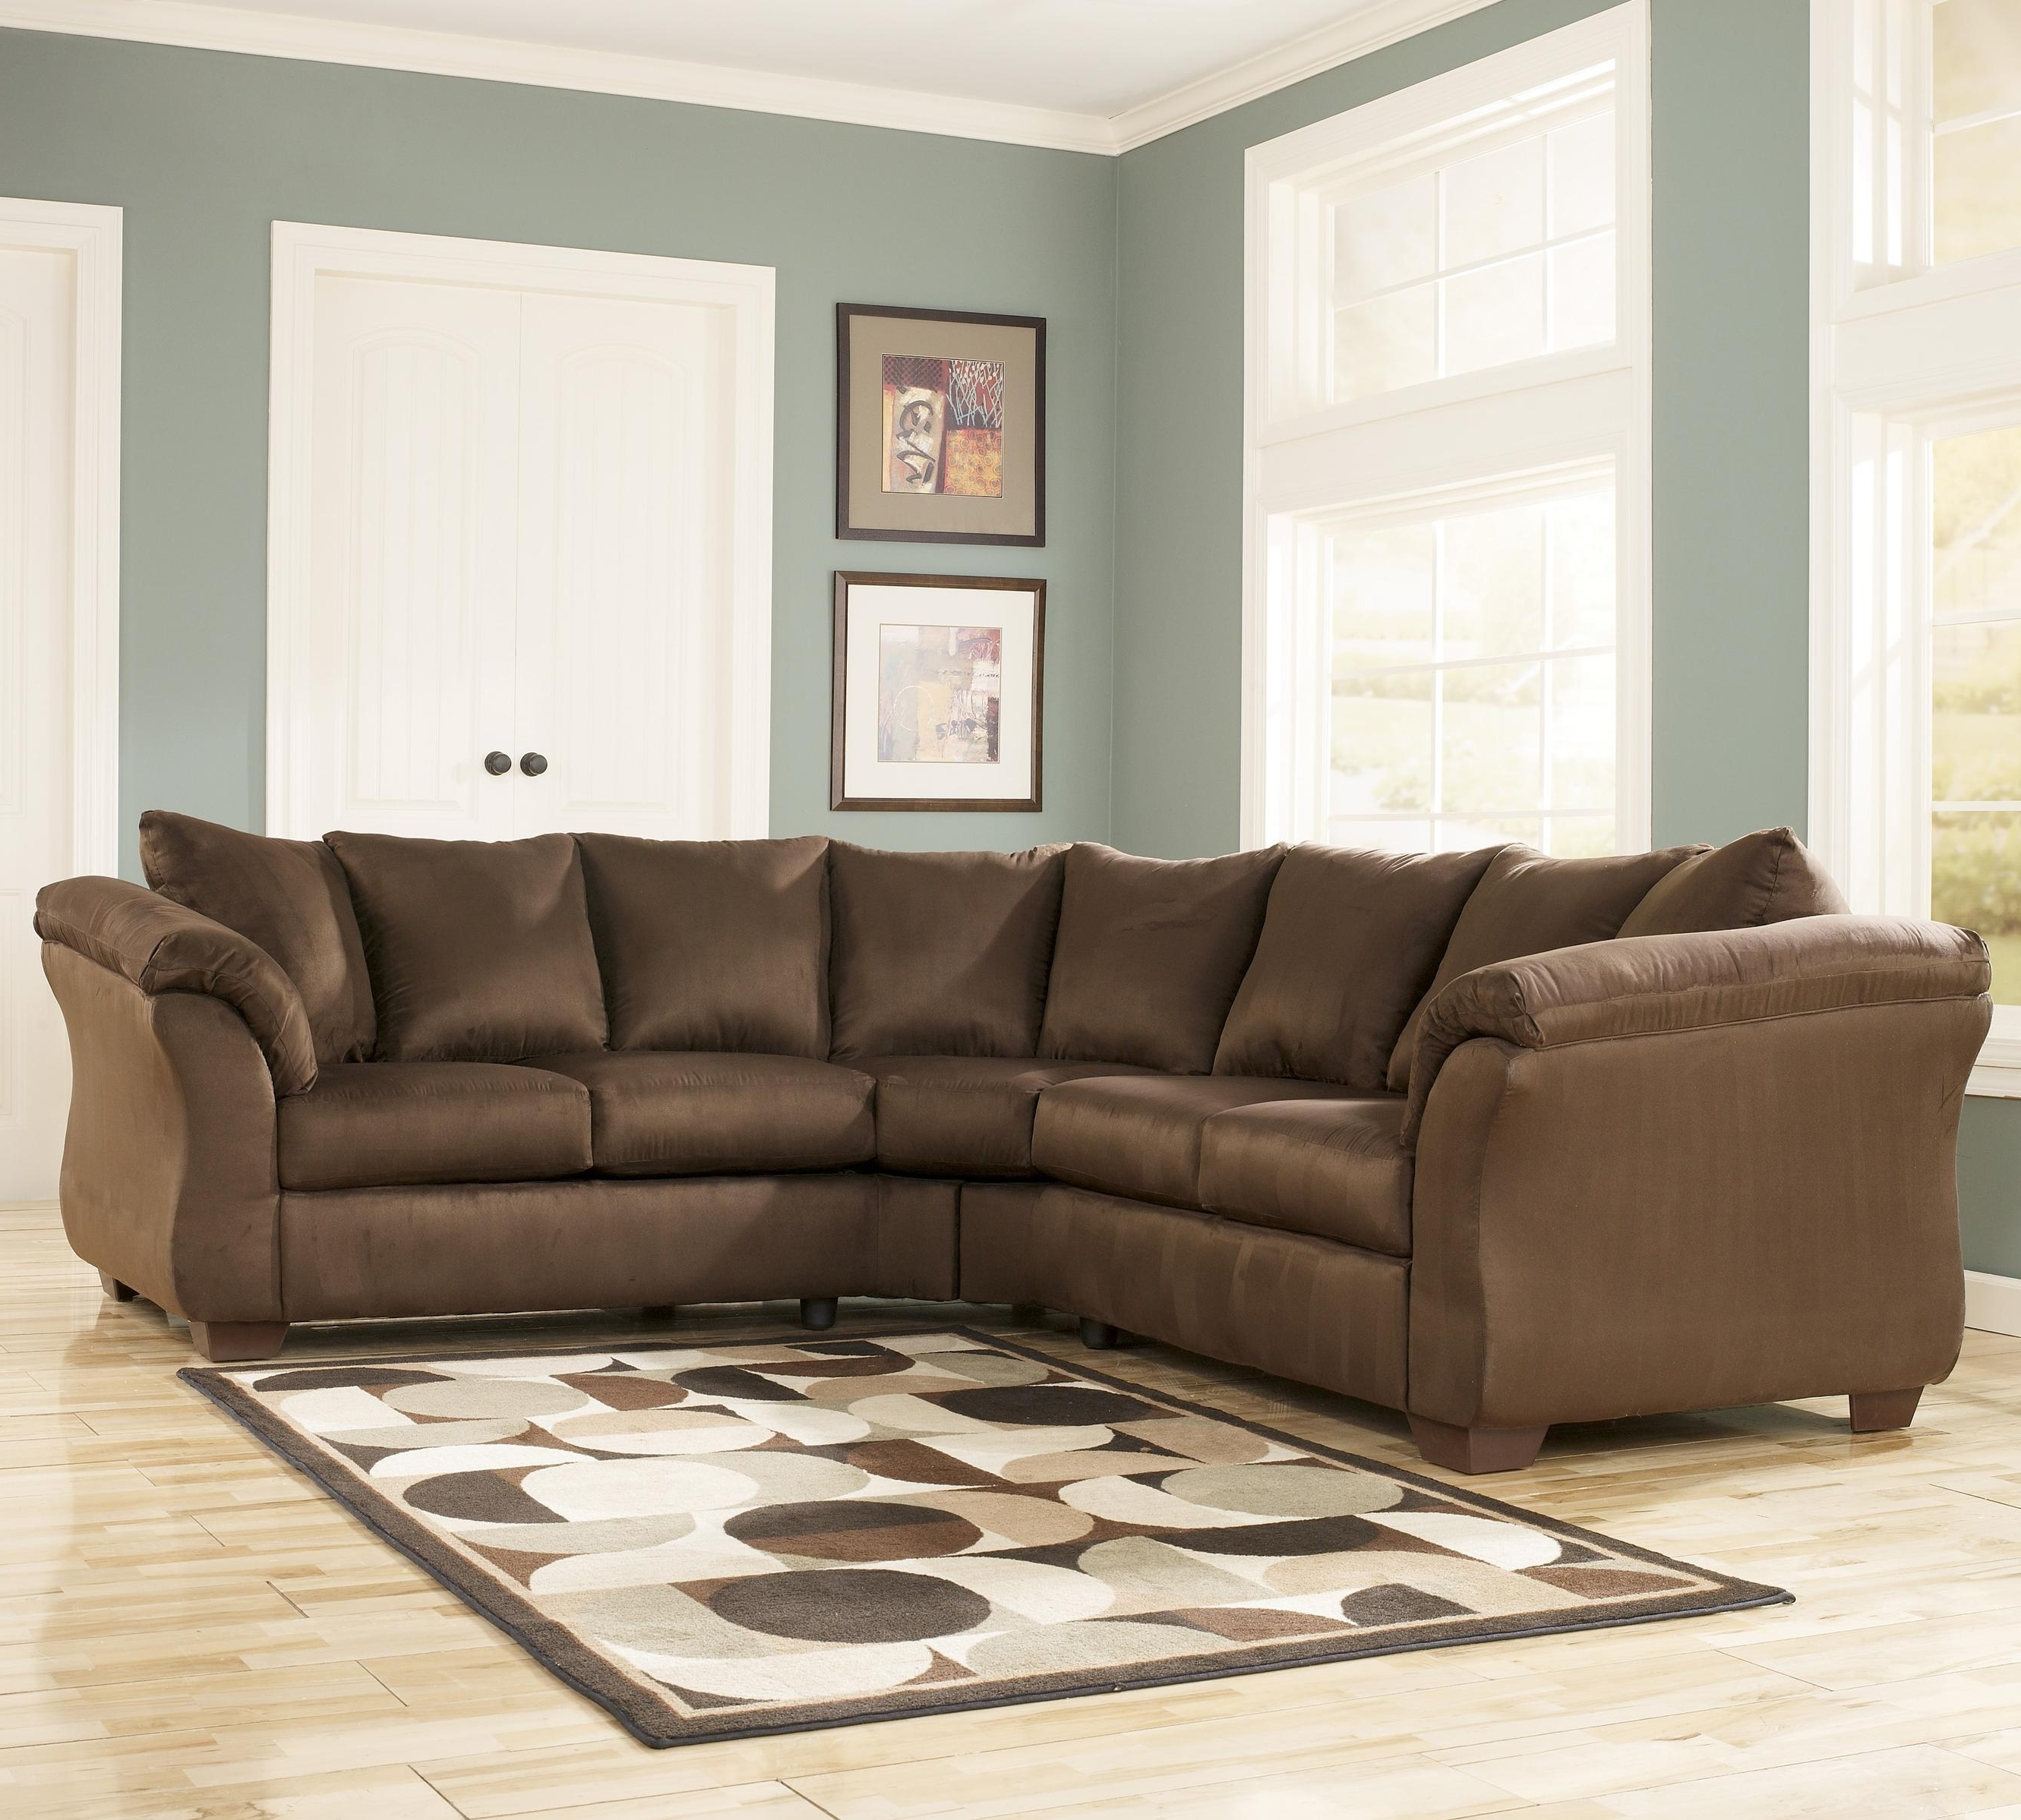 Famous Contemporary Sectional Sofa With Sweeping Pillow Armssignature Intended For Nashville Sectional Sofas (View 4 of 15)